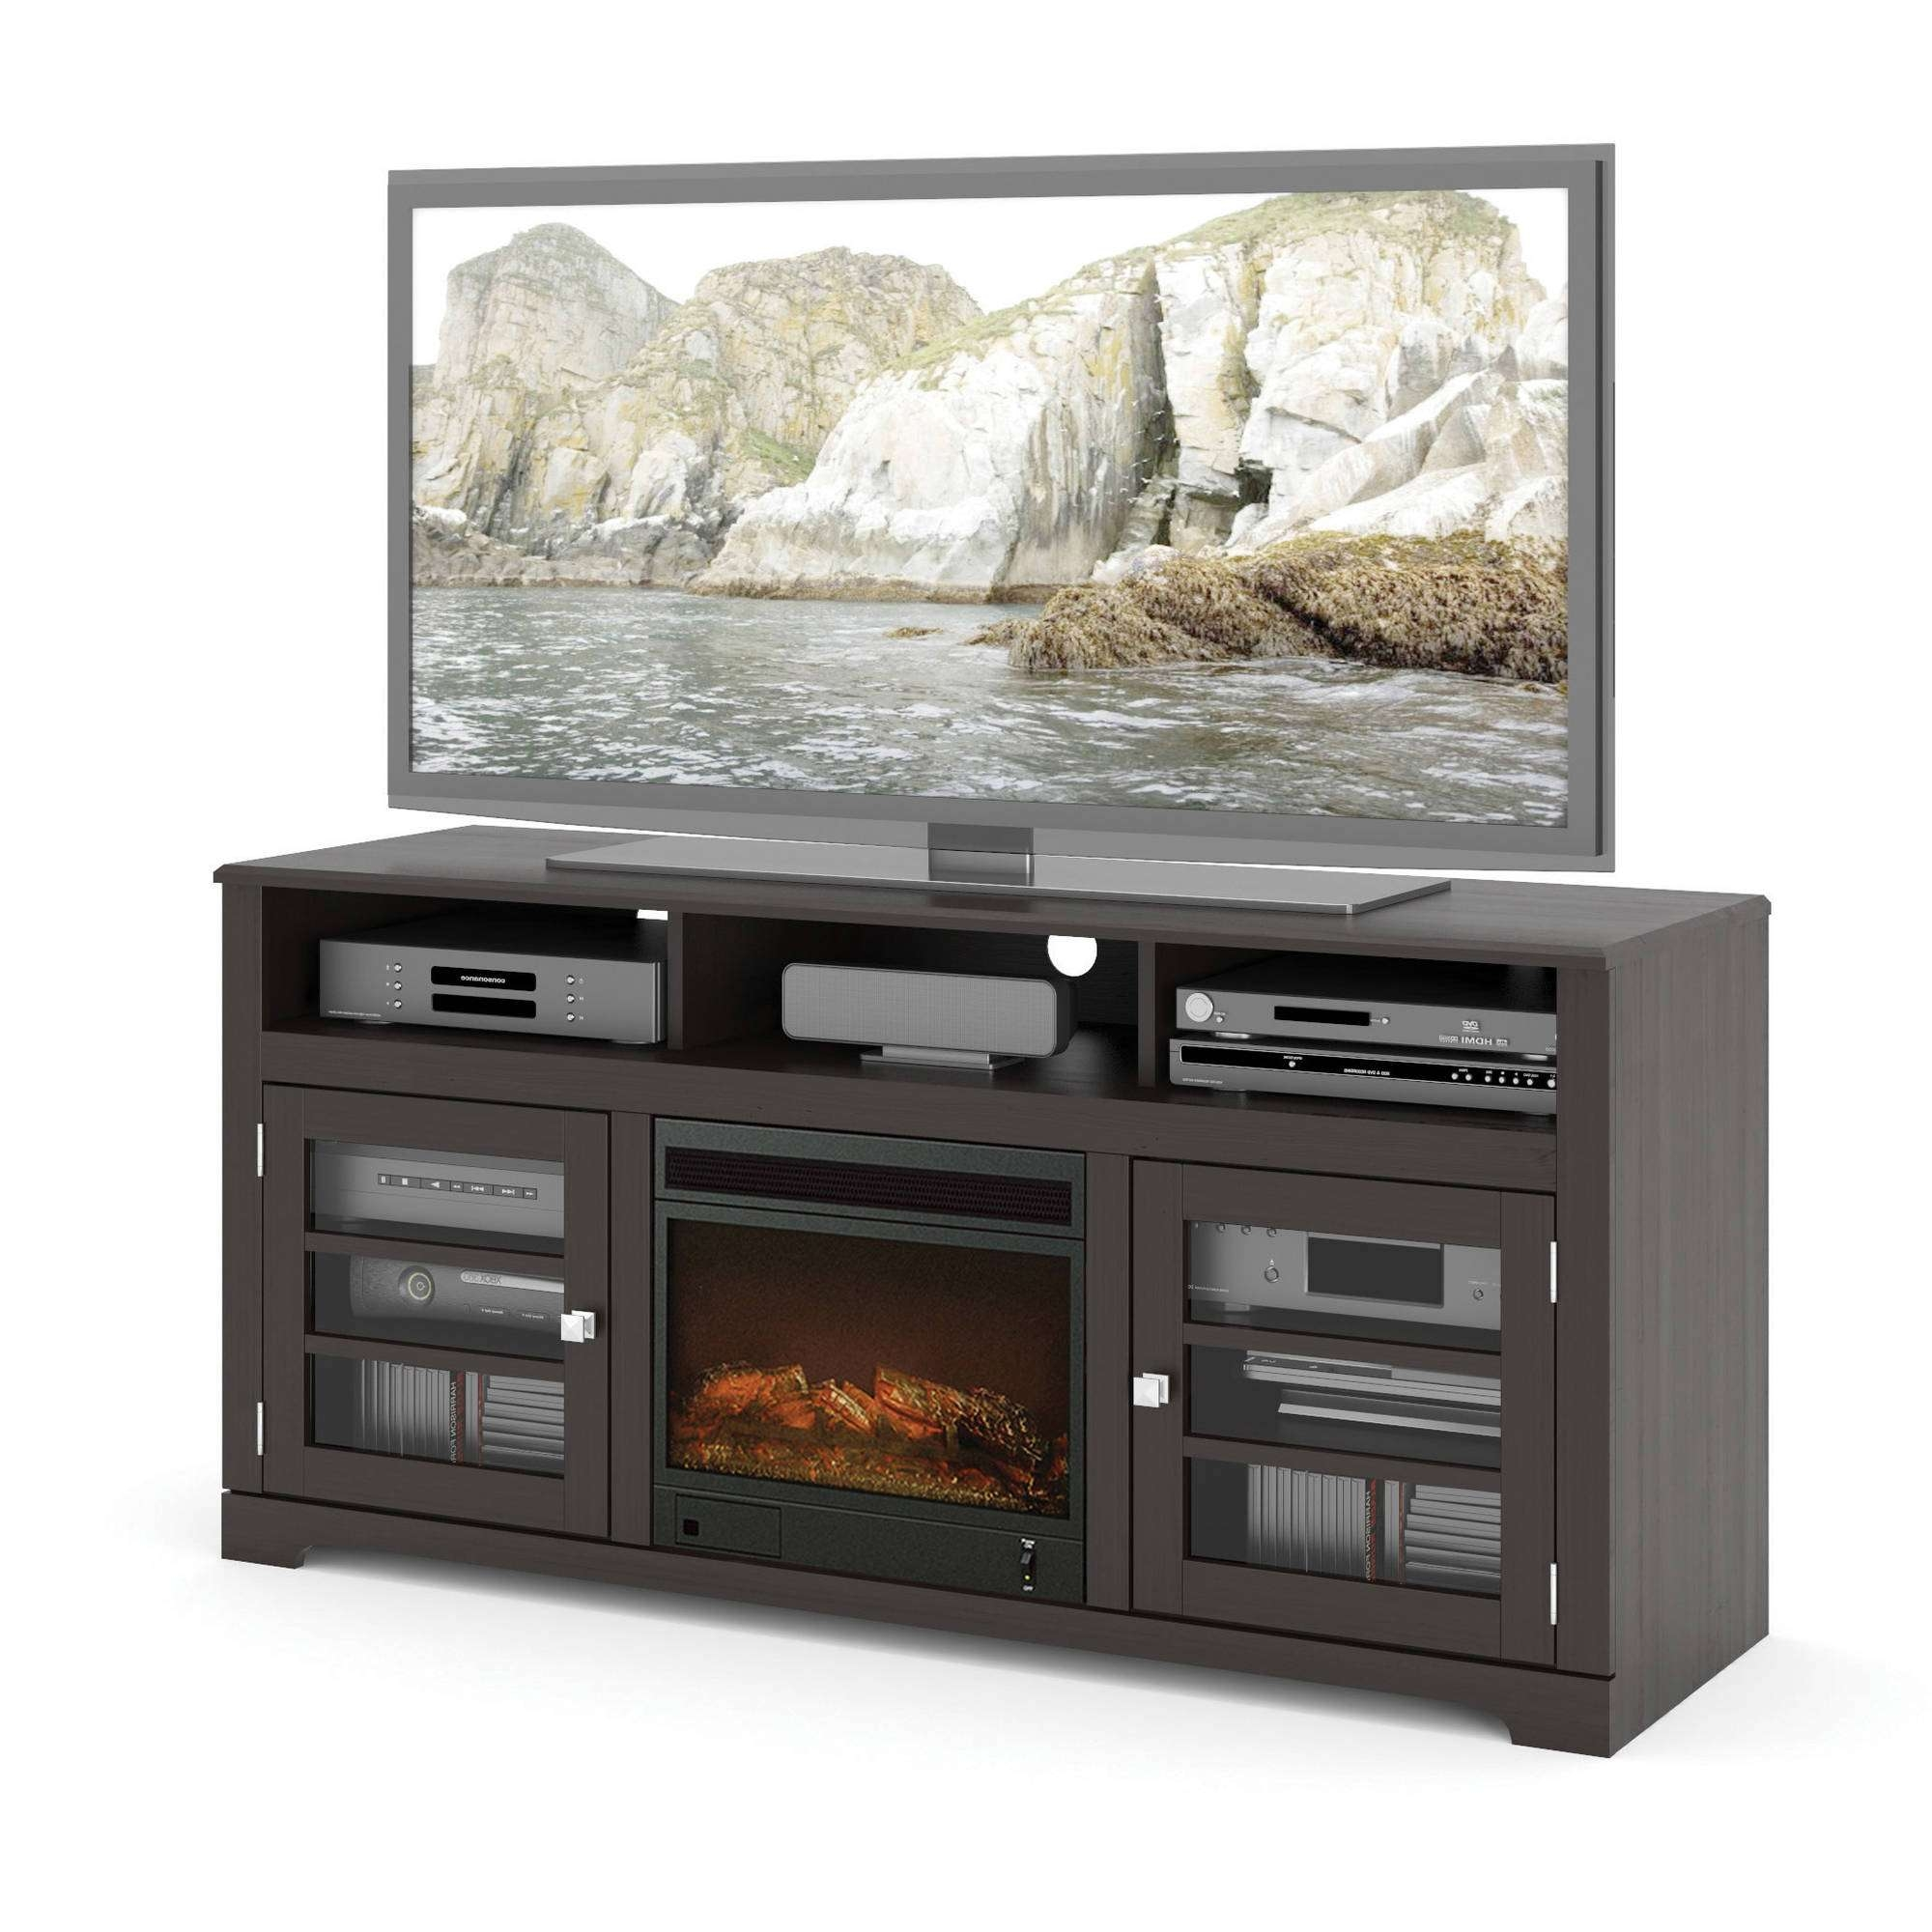 Tv : Wonderful Tv Stands For 70 Inch Tvs For Tv S Over Astonishing Throughout Tv Stands For 70 Inch Tvs (View 15 of 20)